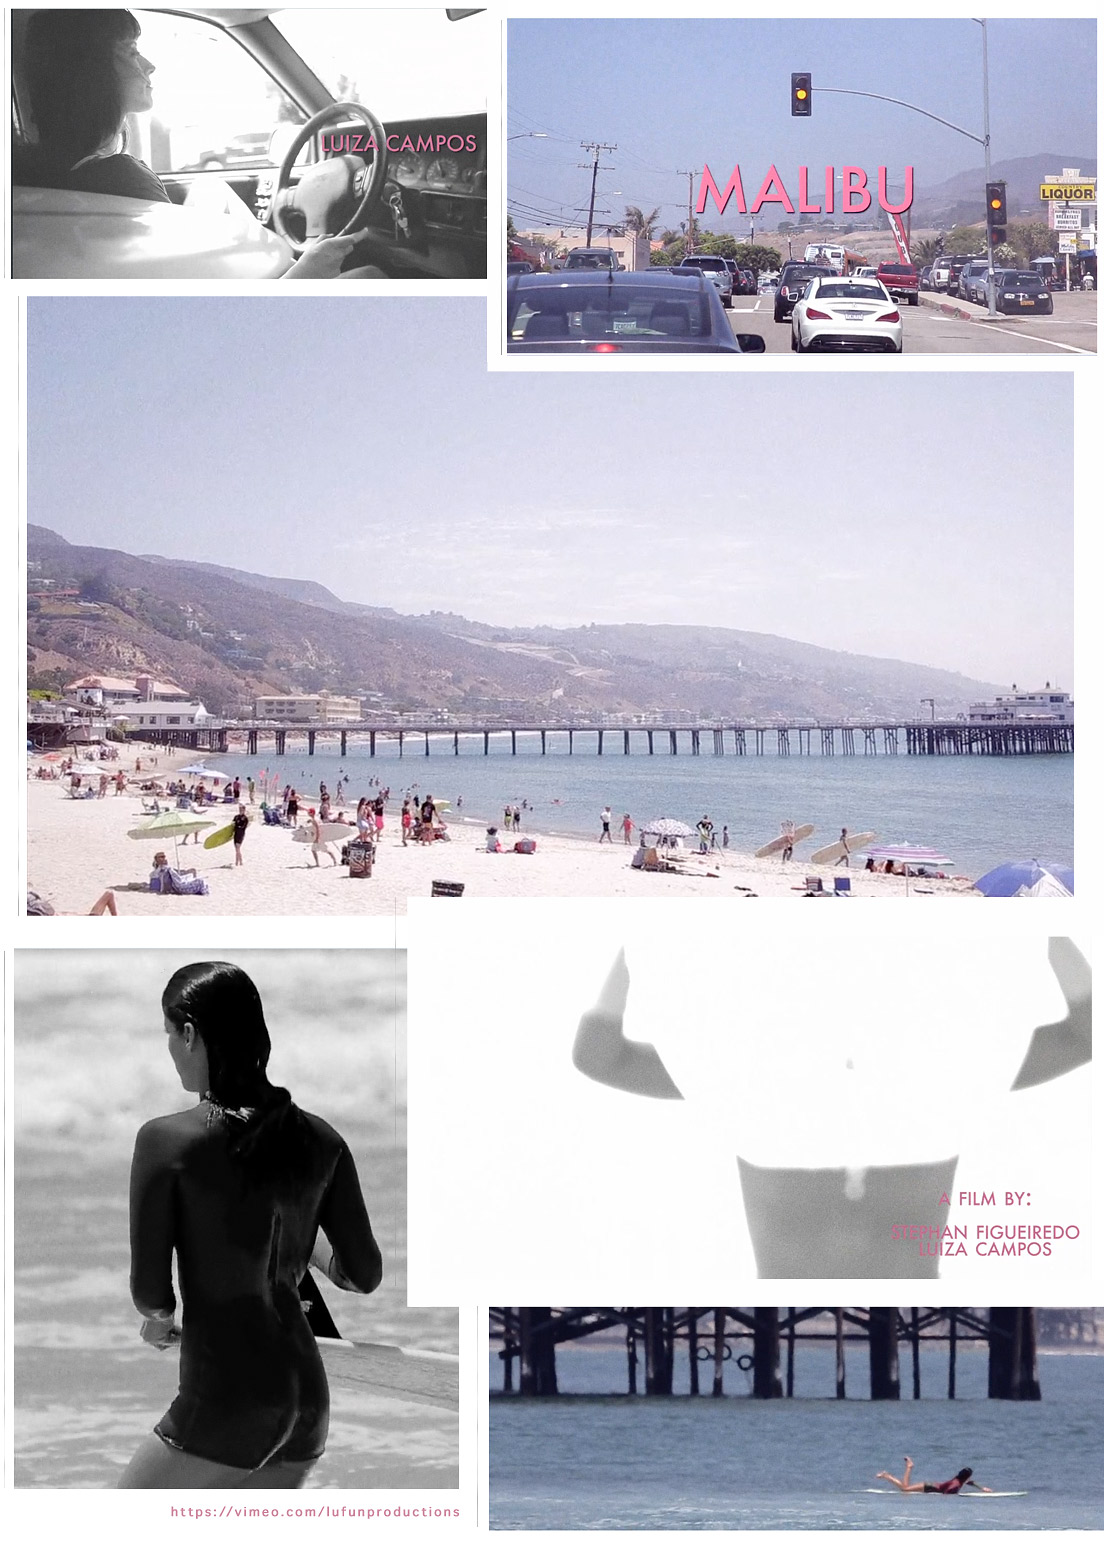 Luiza Campos frame grabs from The Golden State Series - Malibu by L/F Productions